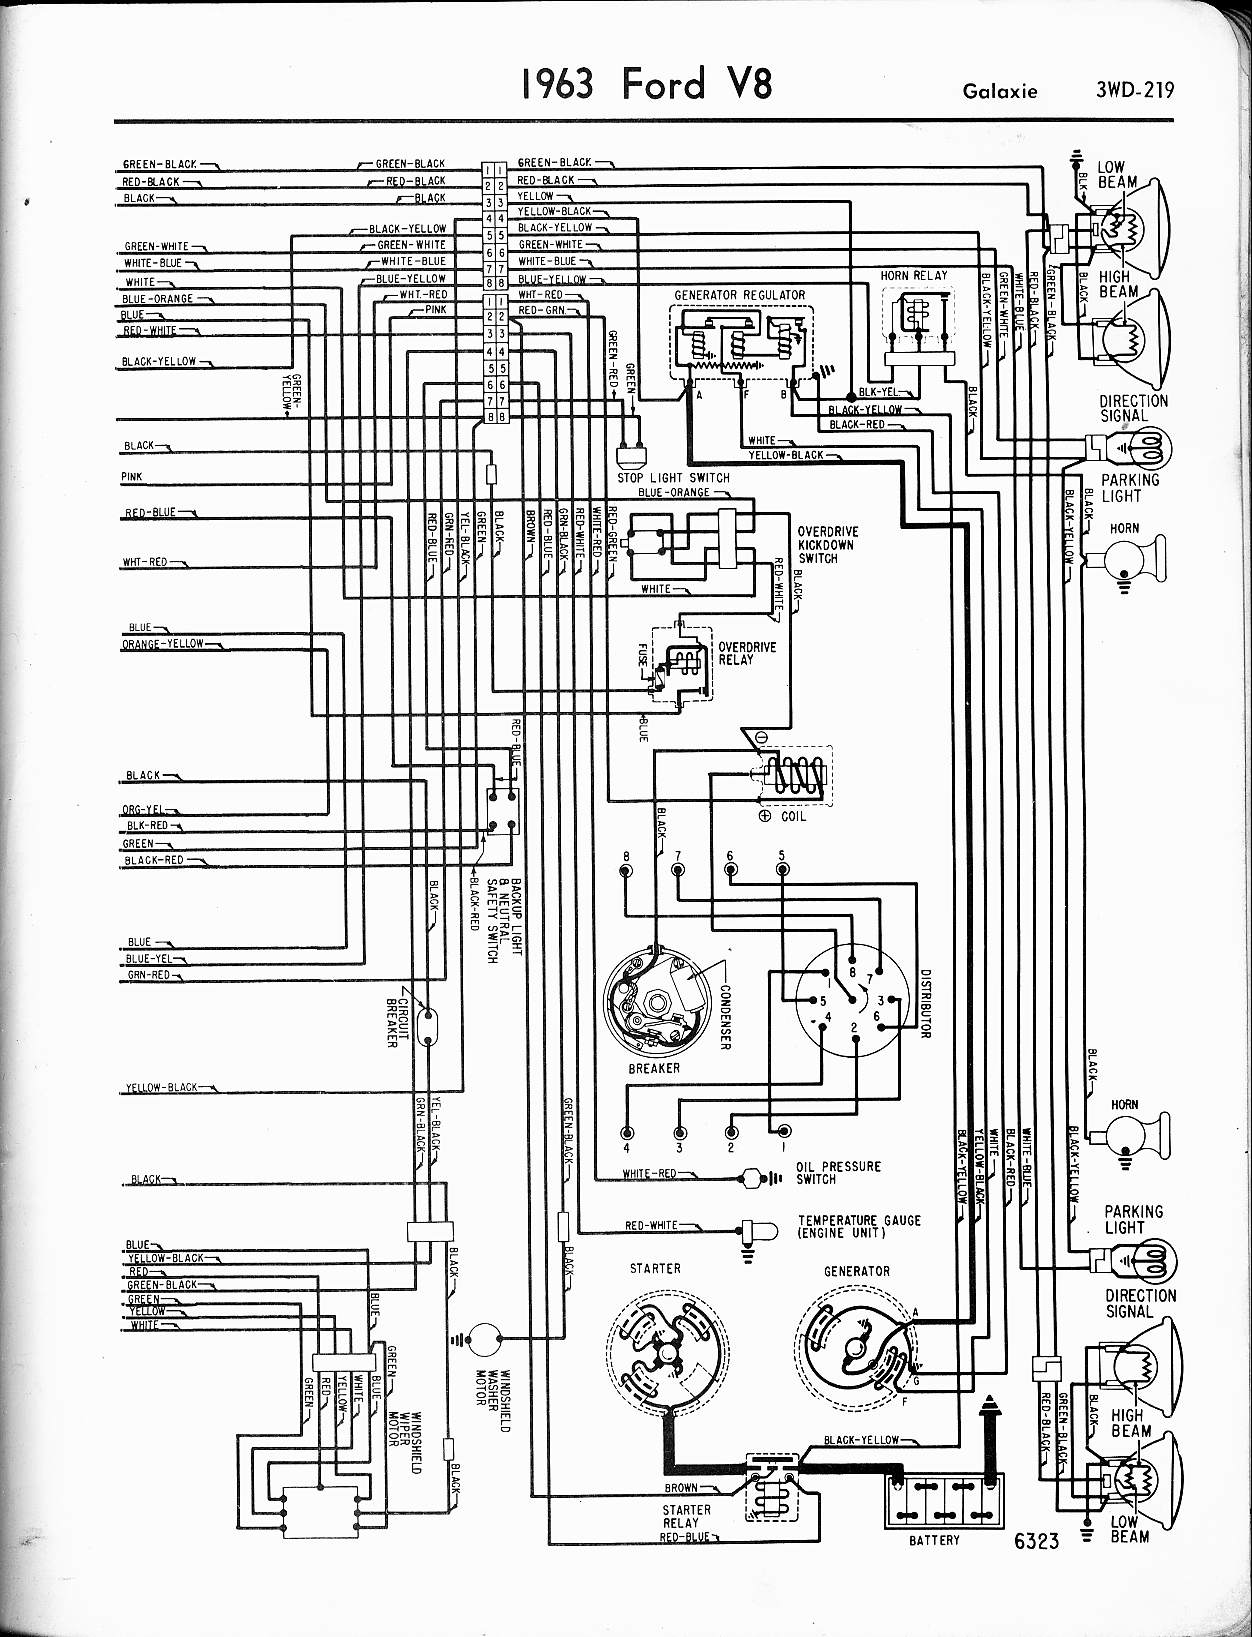 1967 ford ltd fuse box simple schematic diagram 1969 Ford Custom 500 Wiring Diagram 1967 ford ltd fuse box wiring diagram 1964 ford galaxie 1967 ford ltd fuse box